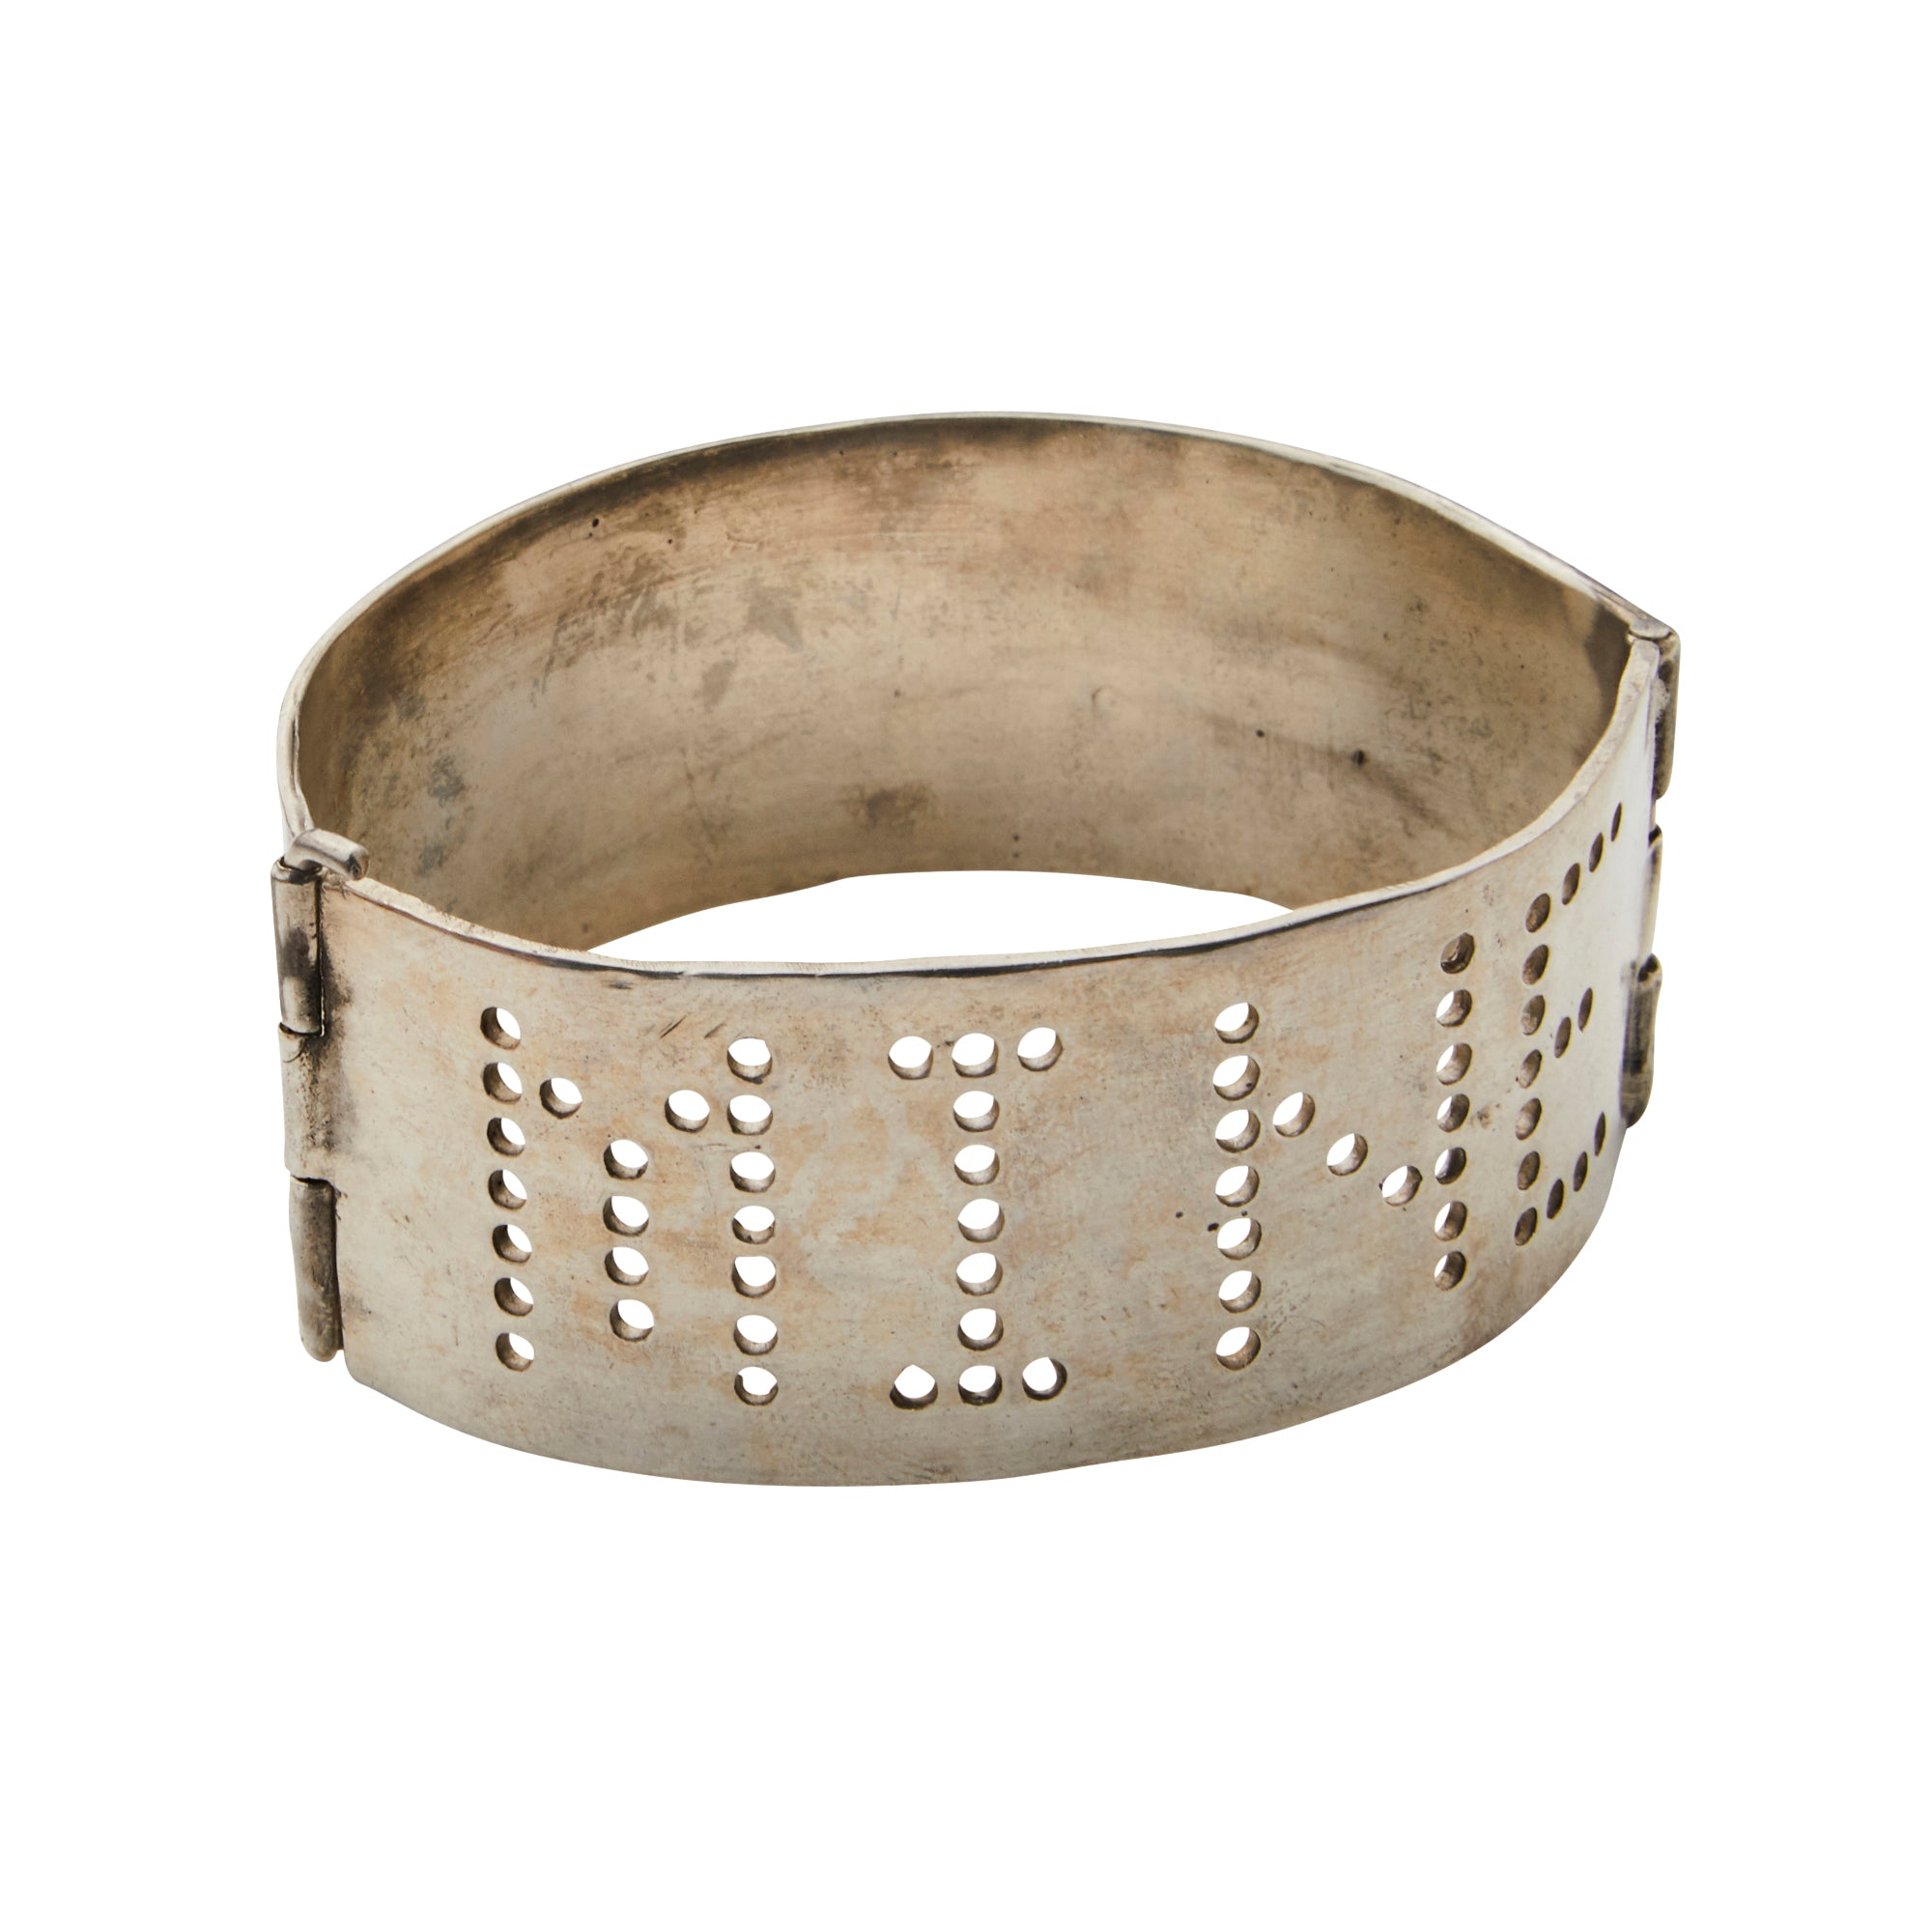 Silver Mine Cuff by James Colarusso for Broken English Jewelry